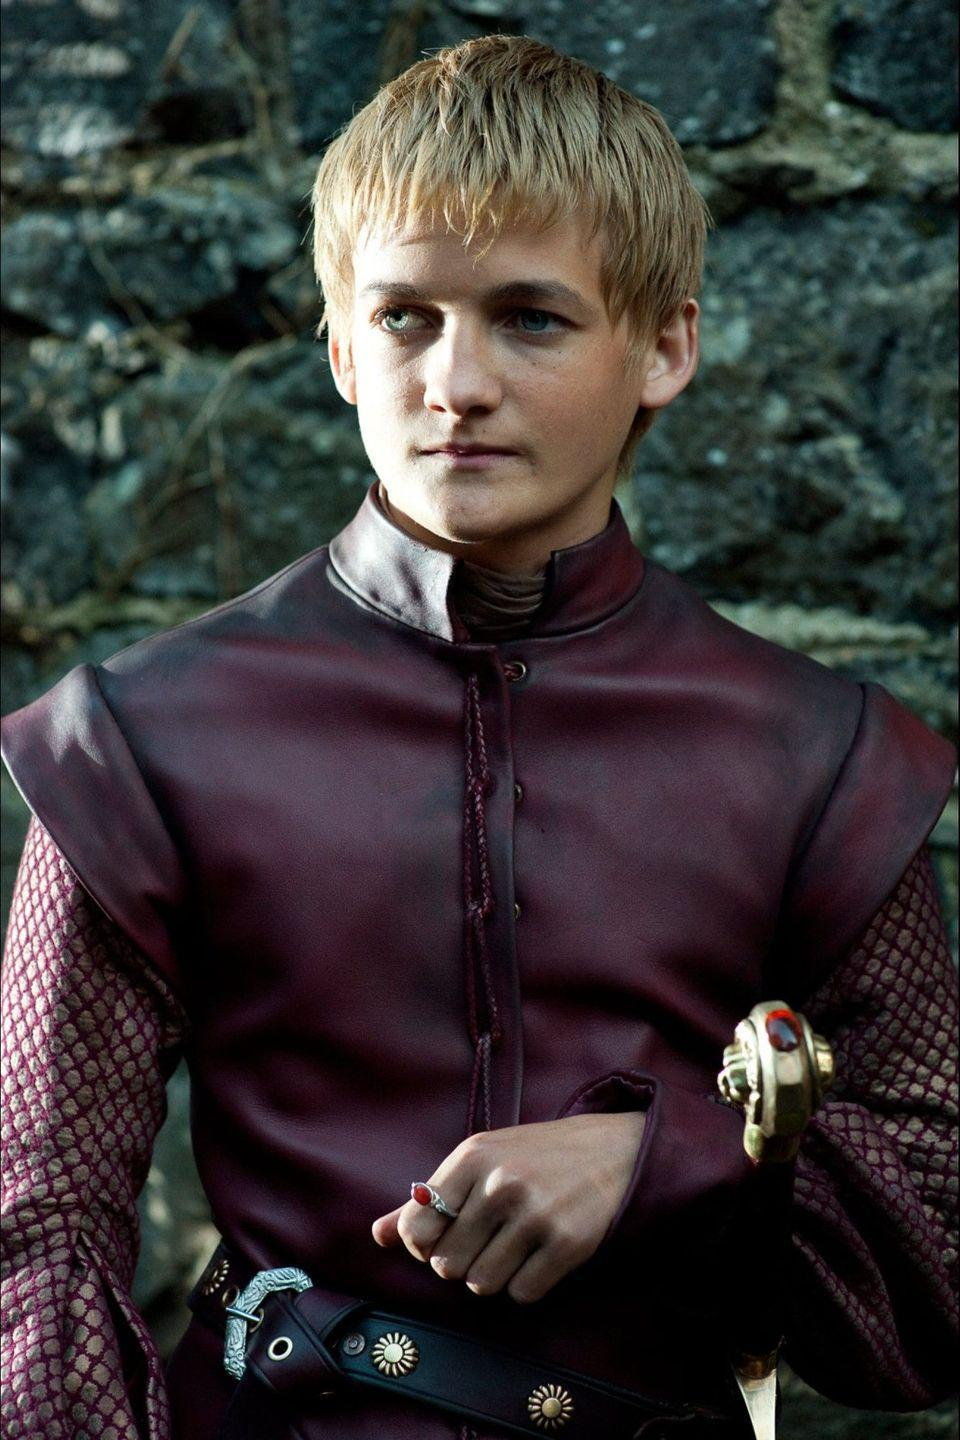 <p>Despite being truly and excellently evil even from episode one, Joffrey managed to make it all the way to season 2 before somebody slapped him (shout out to Tyrion). He will forever go down as one of the best baddies on TV, and a great source of memes. </p>